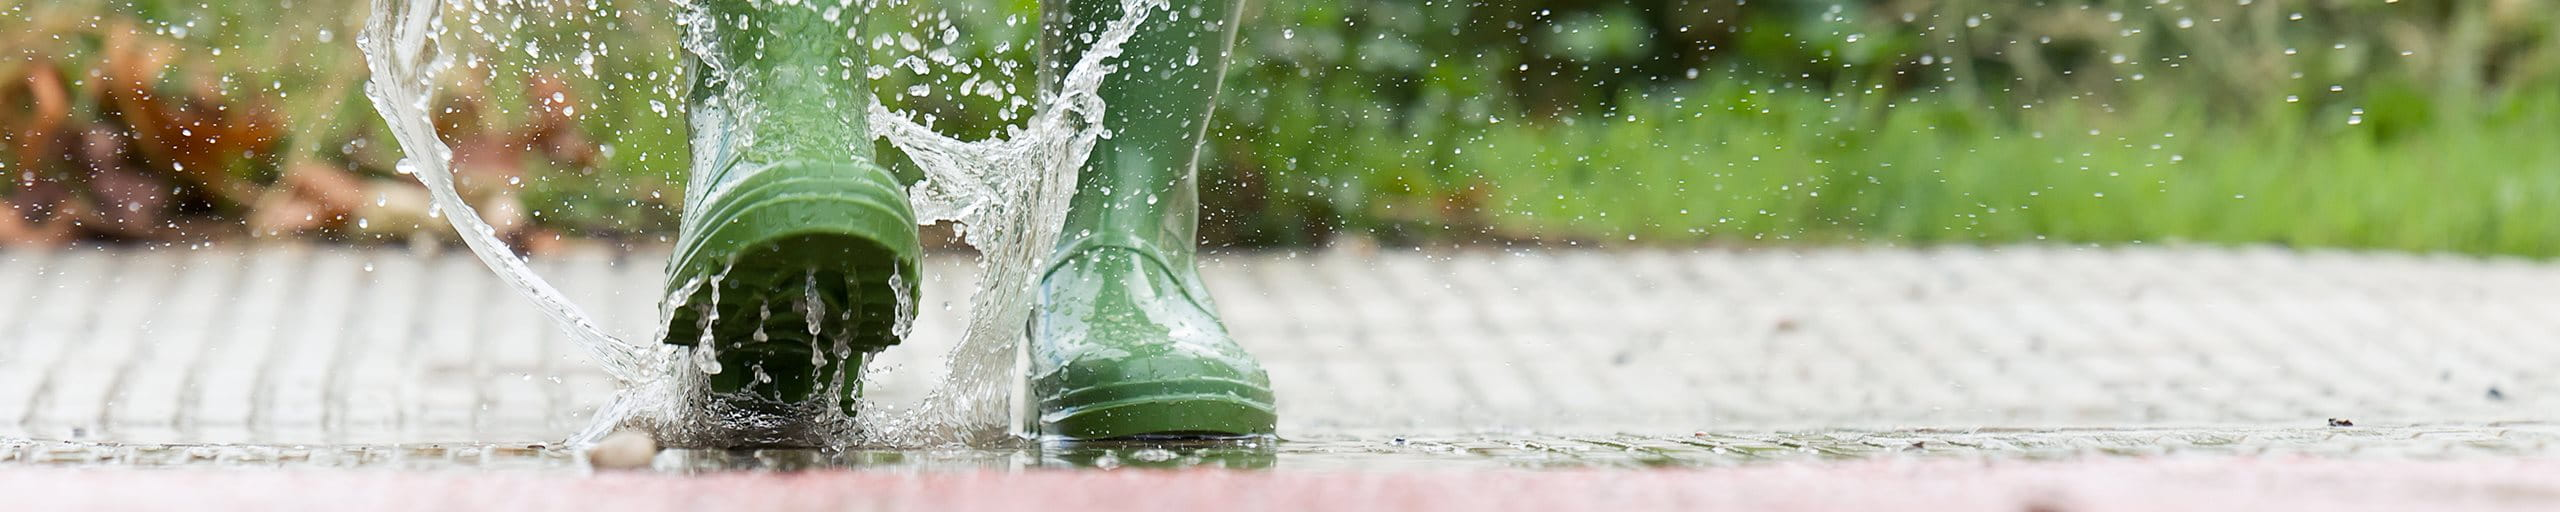 Woman jumps into puddle in green wellies